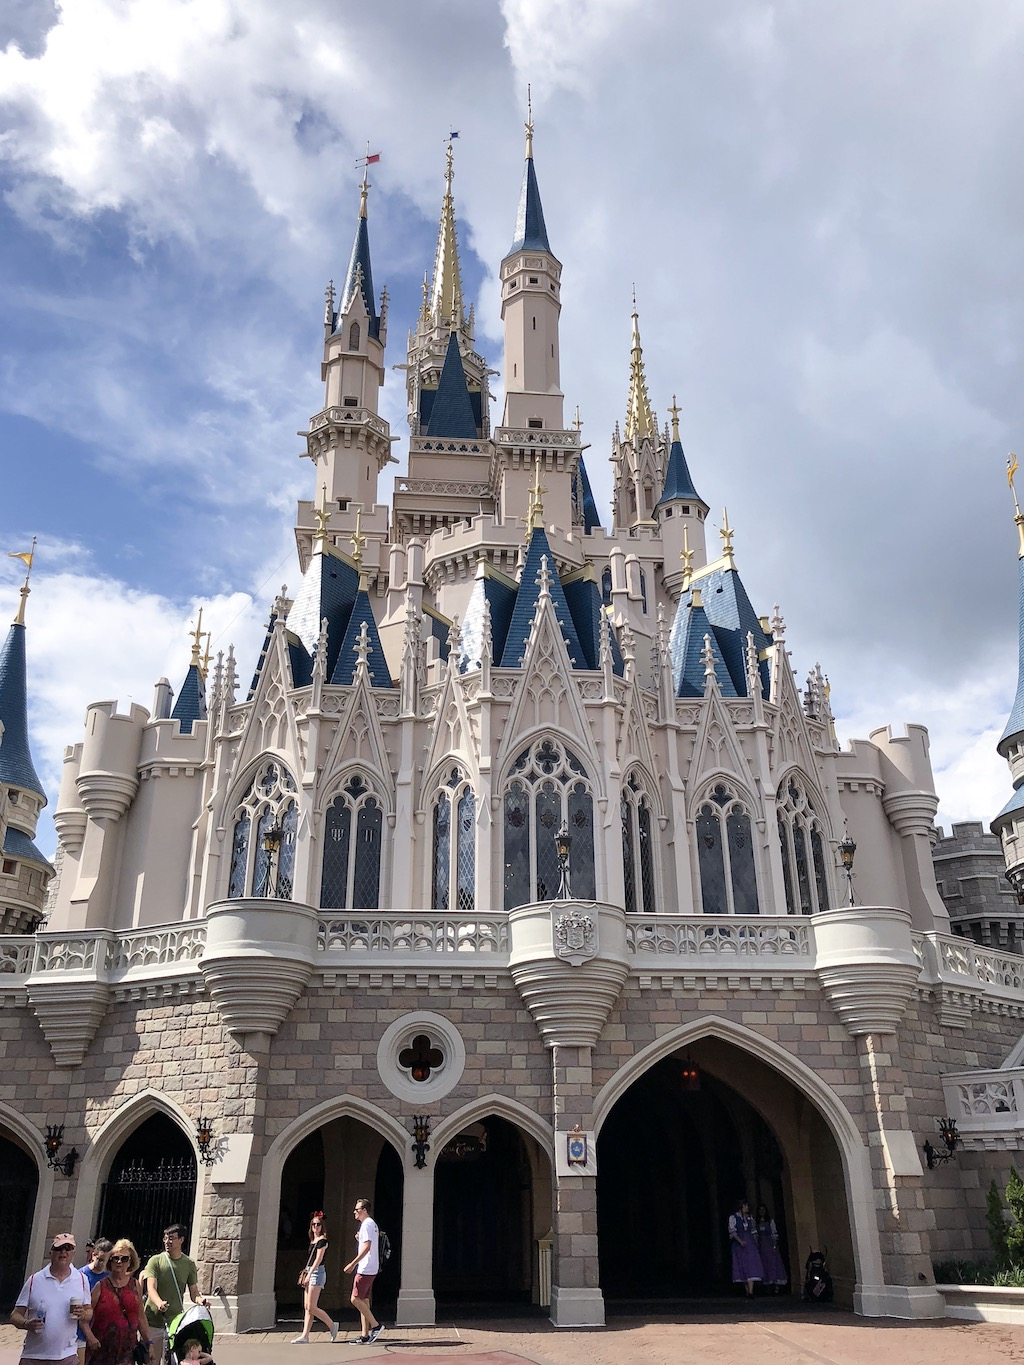 We have some ideas on how to step your trip to the House of Mouse up a notch. Here's our favorite things to do without kids!